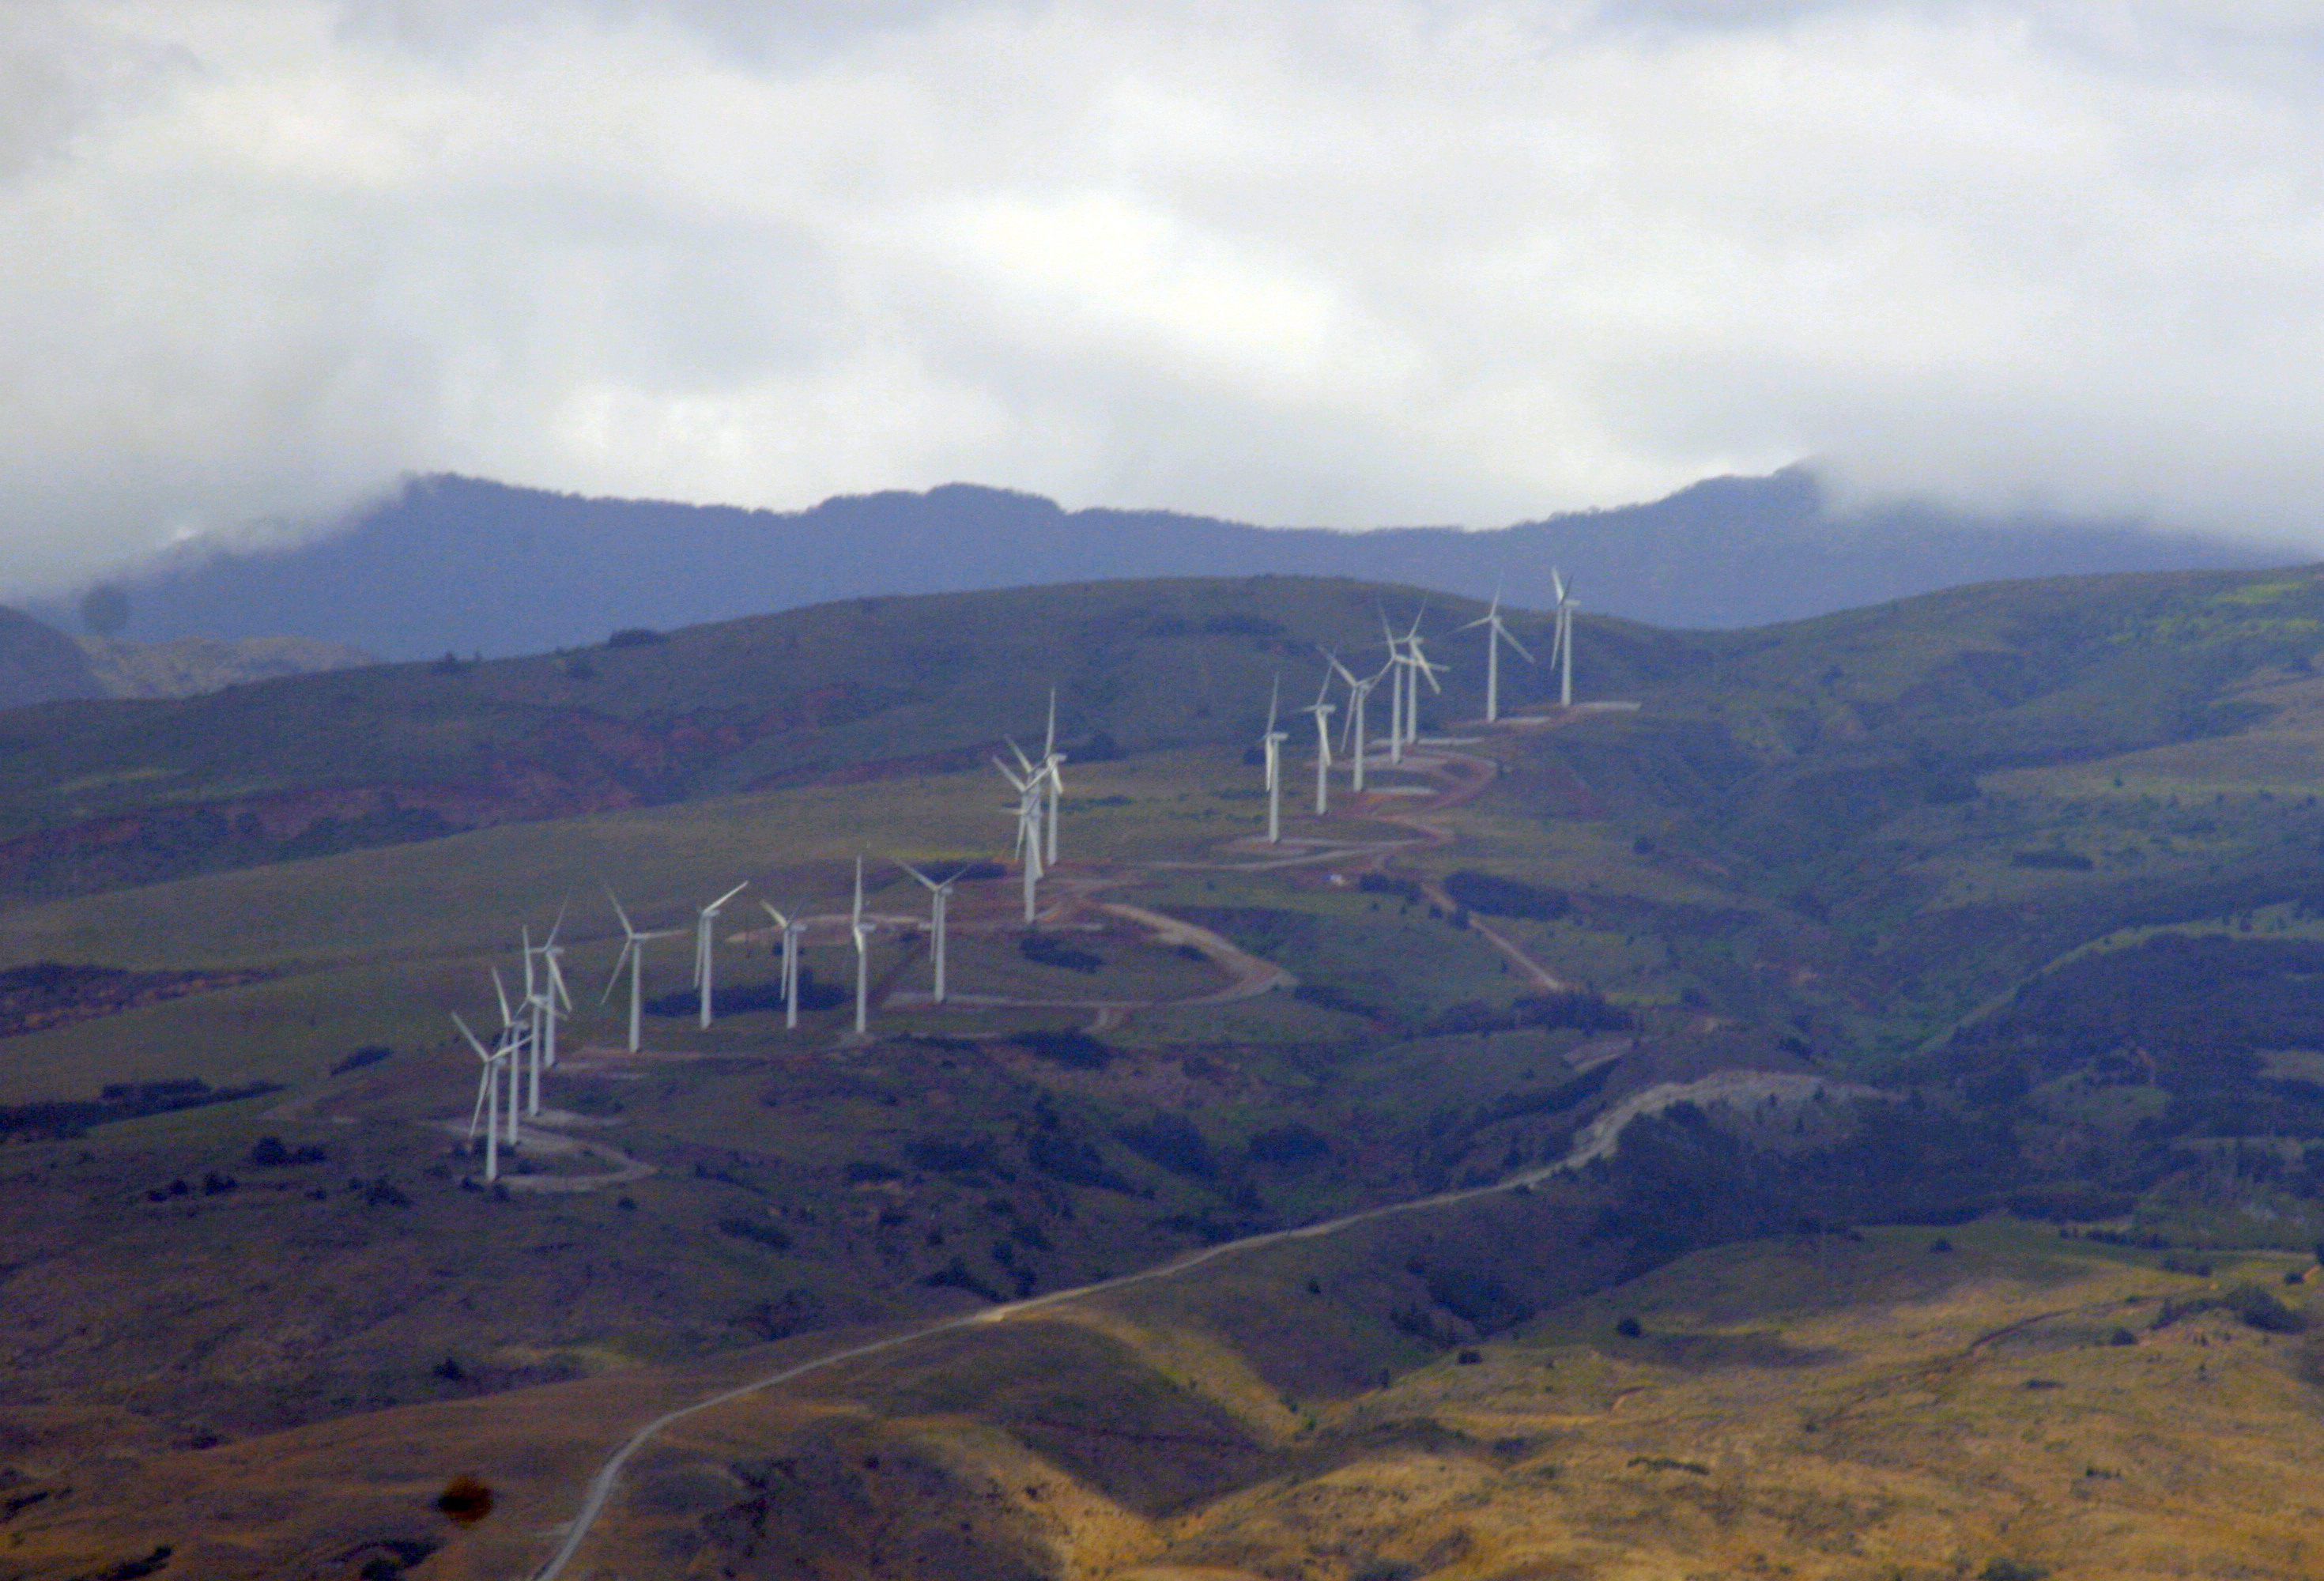 Maui wind farm. Photo by Alvin Smith/The_Smiths on Flickr (Creative Commons).